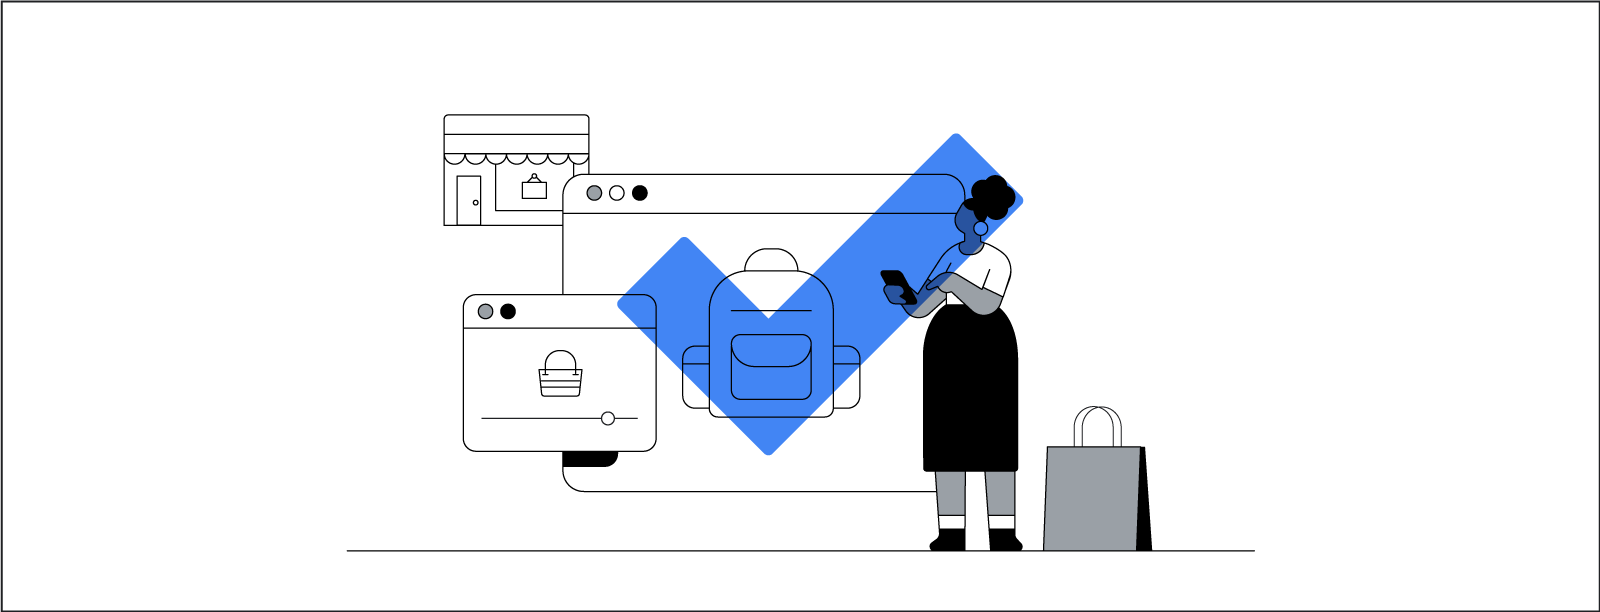 A stylized illustration of a woman using a smartphone while shopping. She stands in front of an array of larger-than-life browser windows that display digital storefronts.